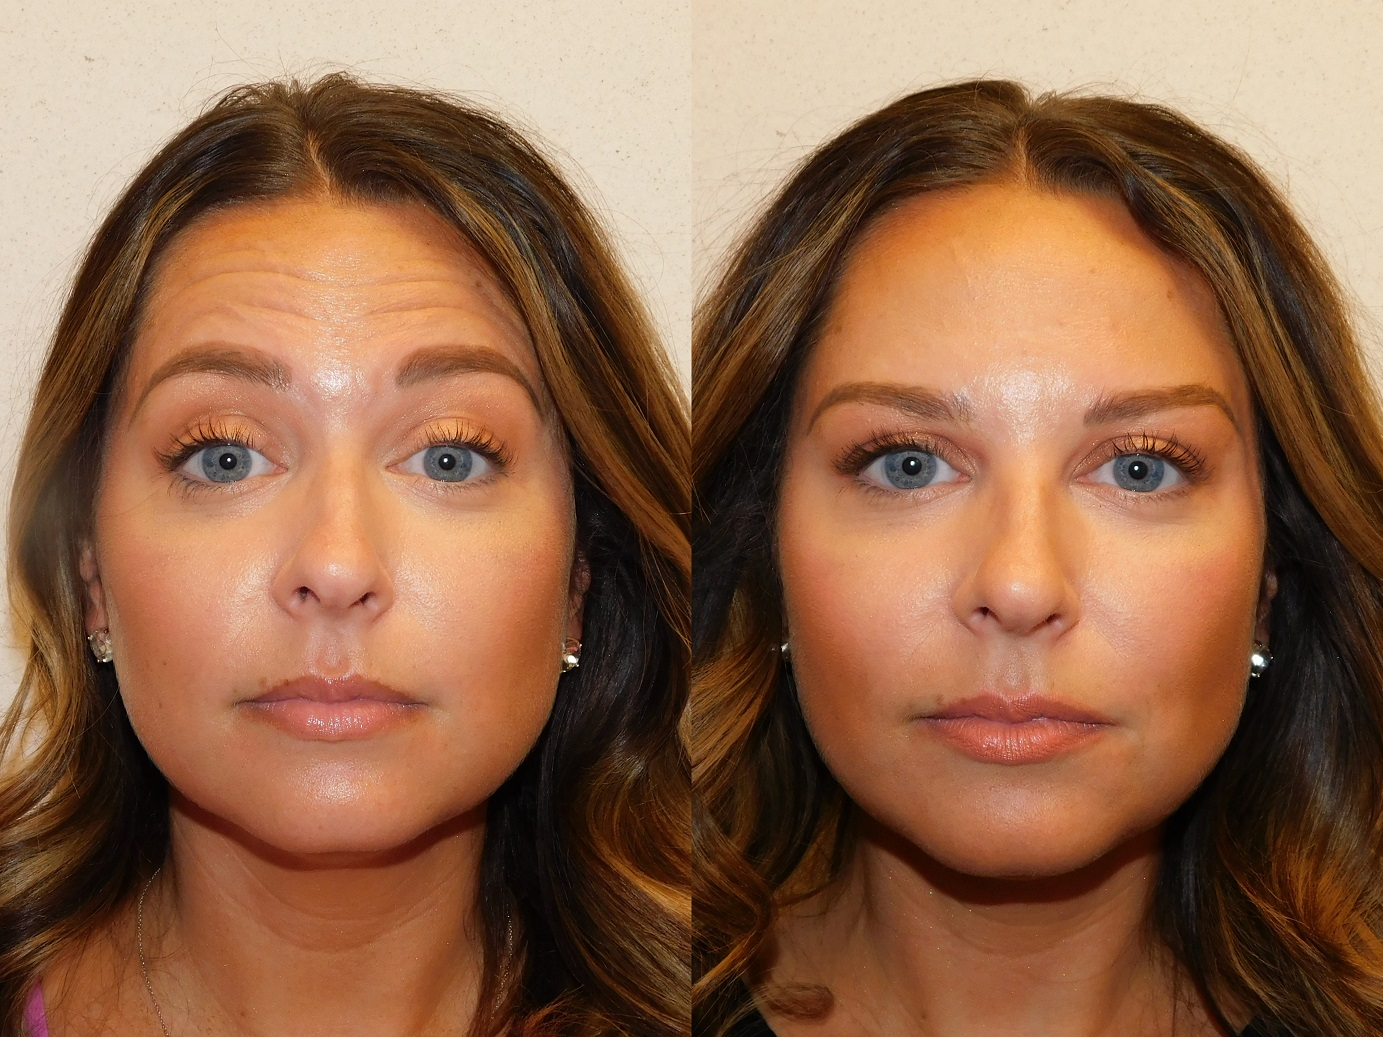 Botox results-Jeuveau-#NEWTOX-Dr. Joel Schlessinger-LovelySkin Omaha-Omaha Blogger-Omaha Beauty Blogger-Beauty Blog Post-Botox Results-Sabby Style-9